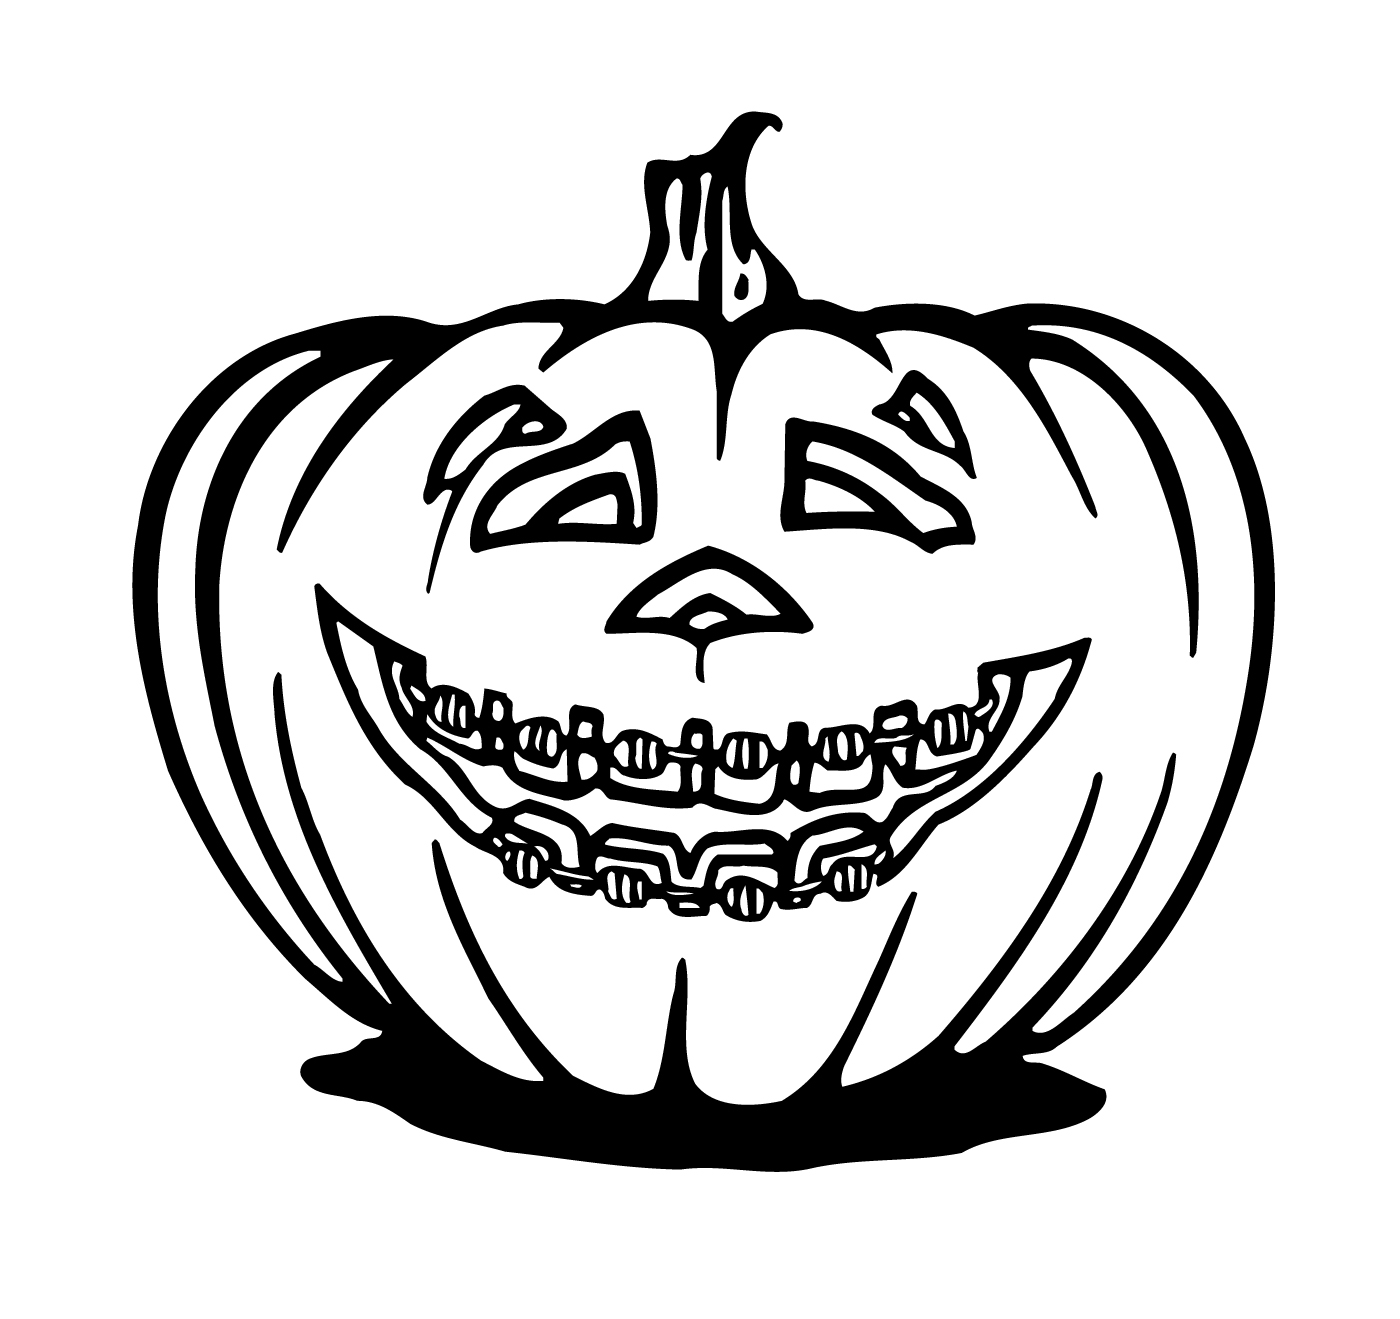 Braces clipart black and white. Challenge coloring pages artwork